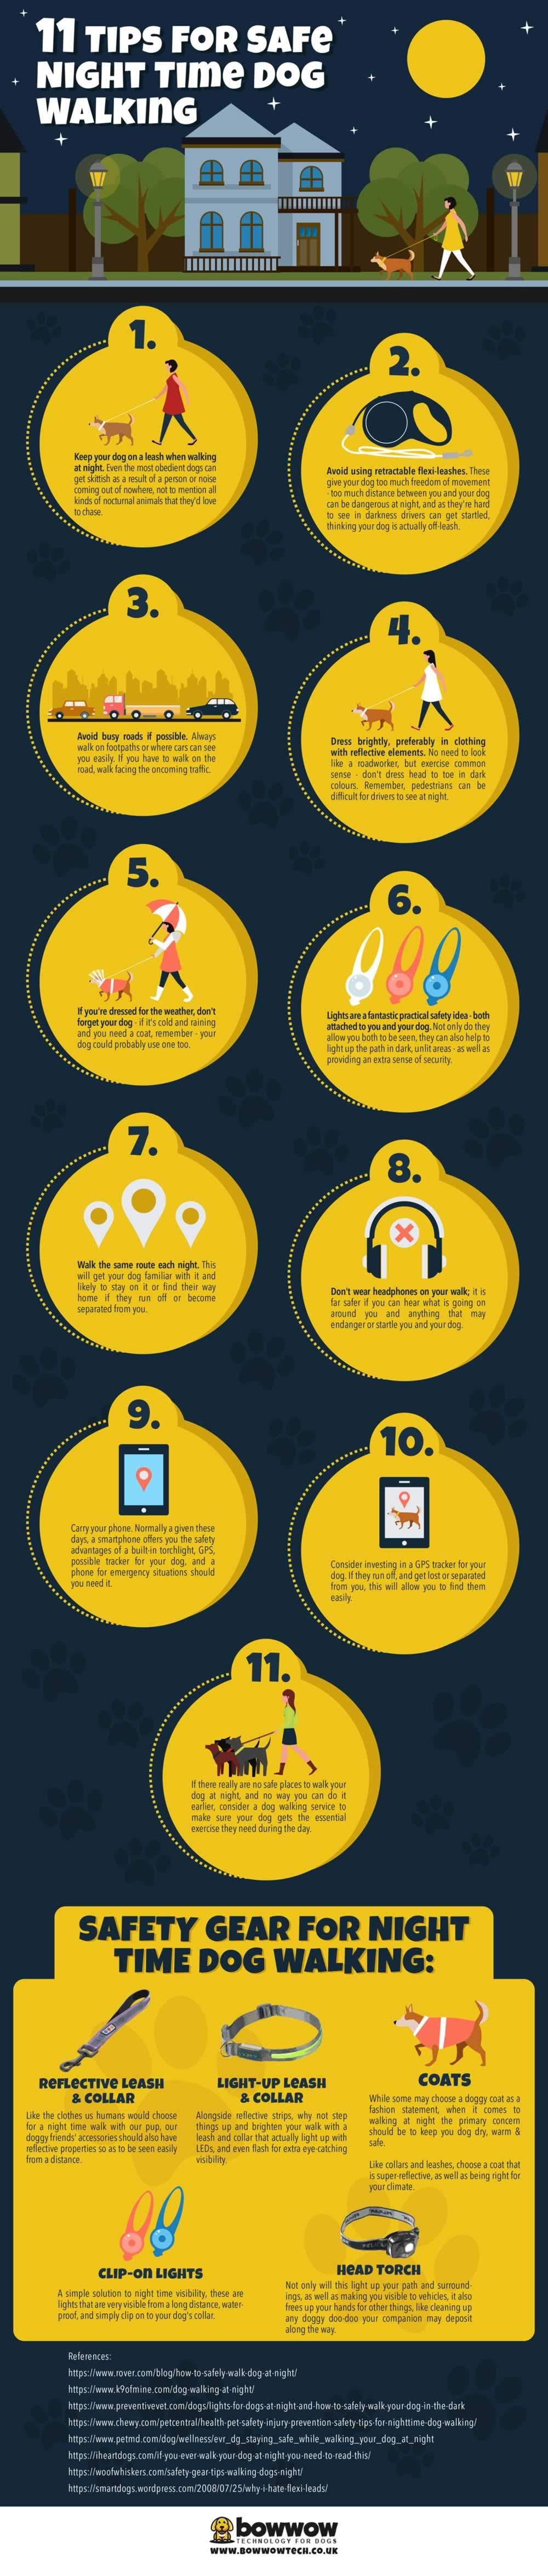 Tips For Safe Night Time Dog Walking #infographic